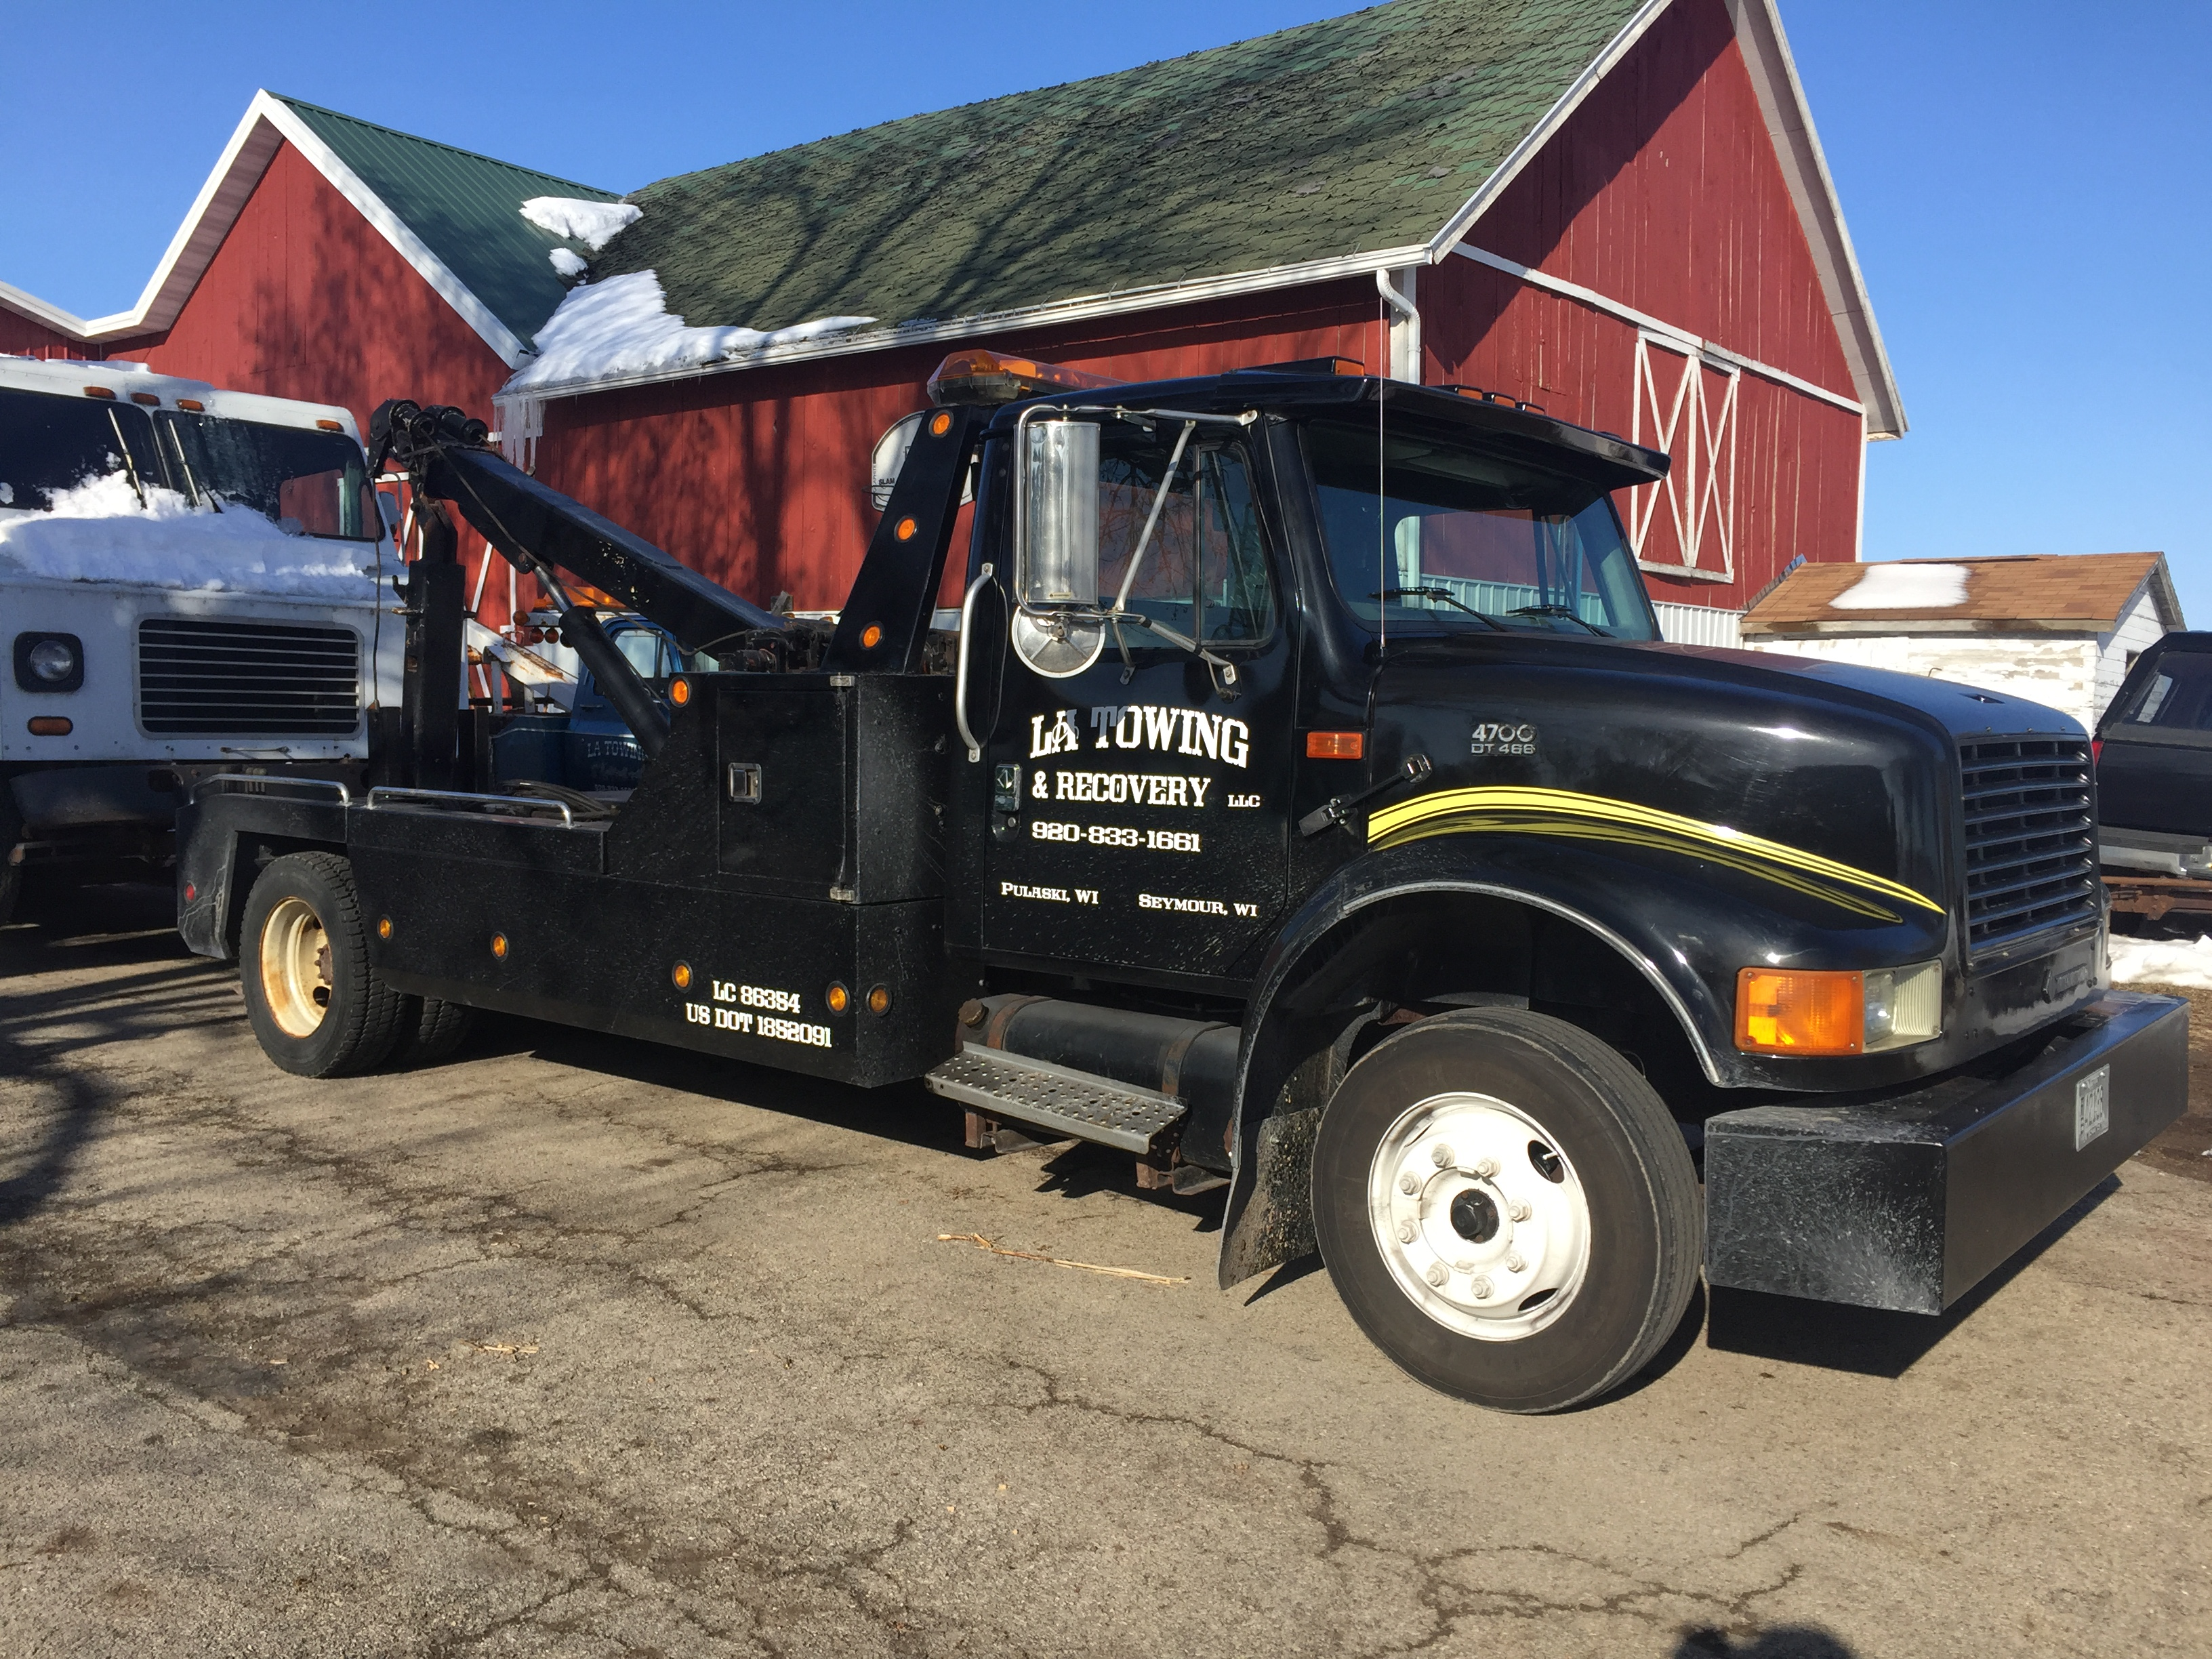 LA Towing & Recovery, LLC image 22